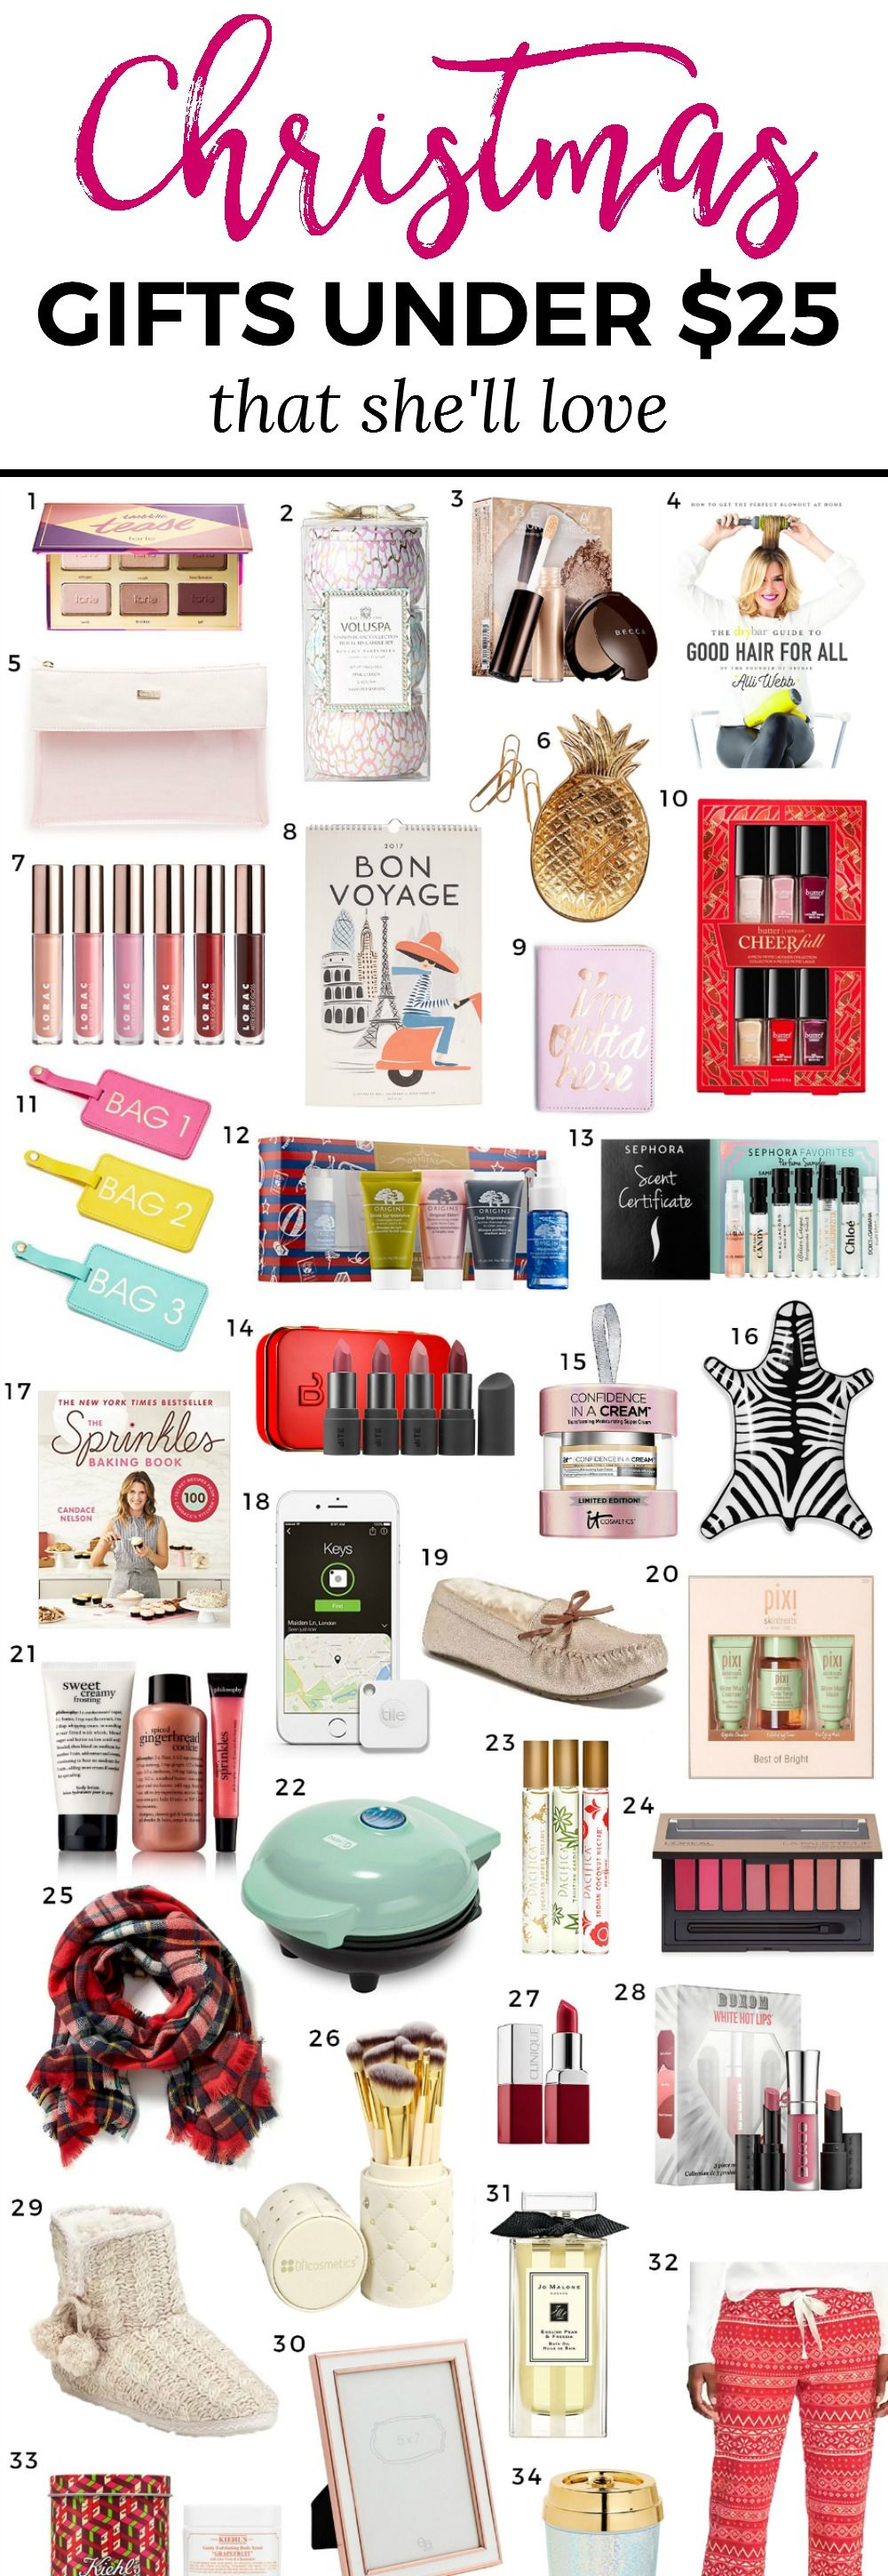 Christmas Gifts for Teenage Girls List